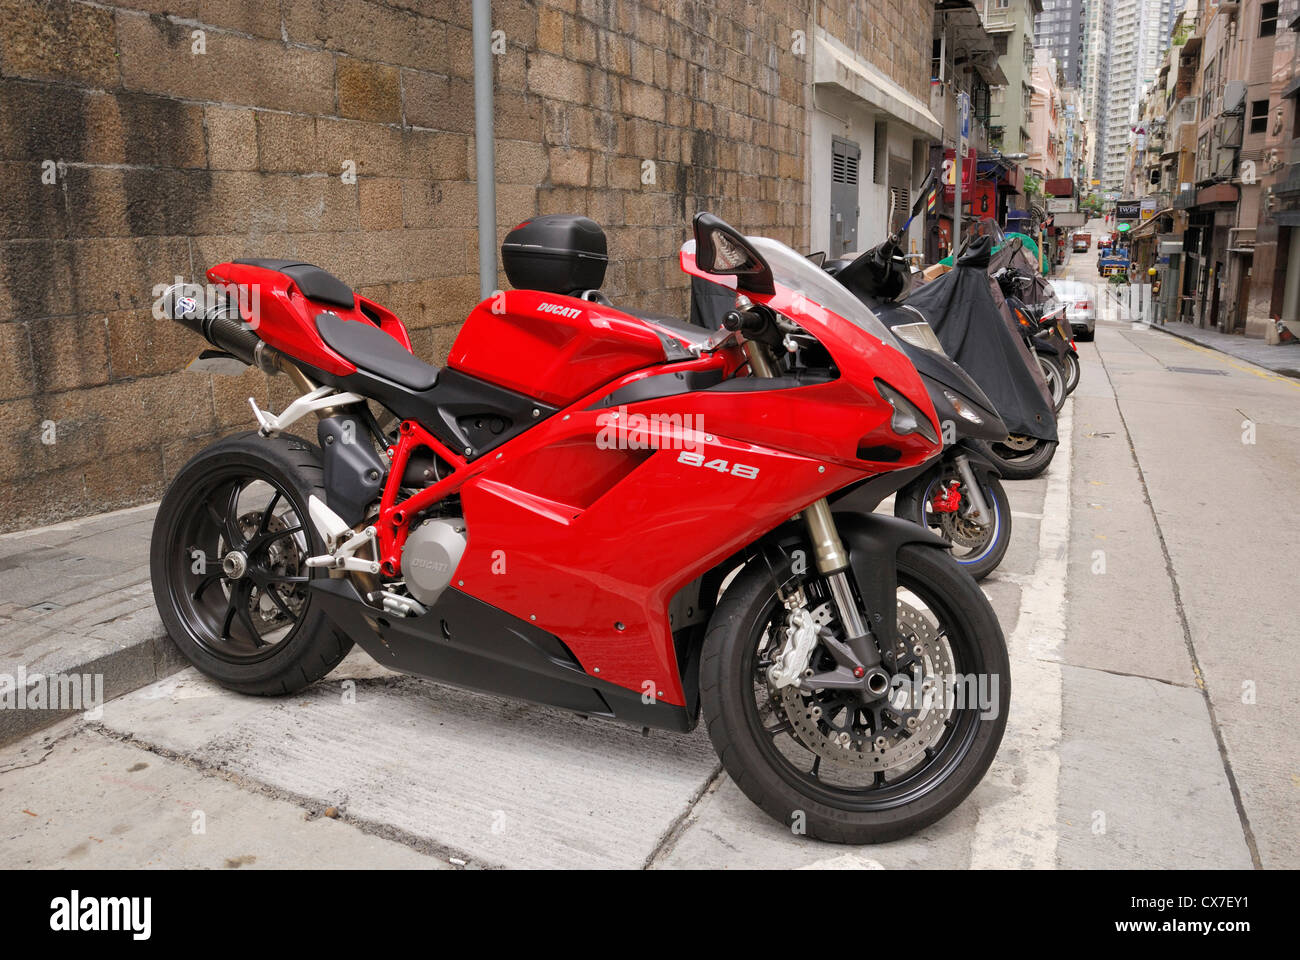 Ducati 848 motorcycle parked on the streets of Hong Kong,China - Stock Image